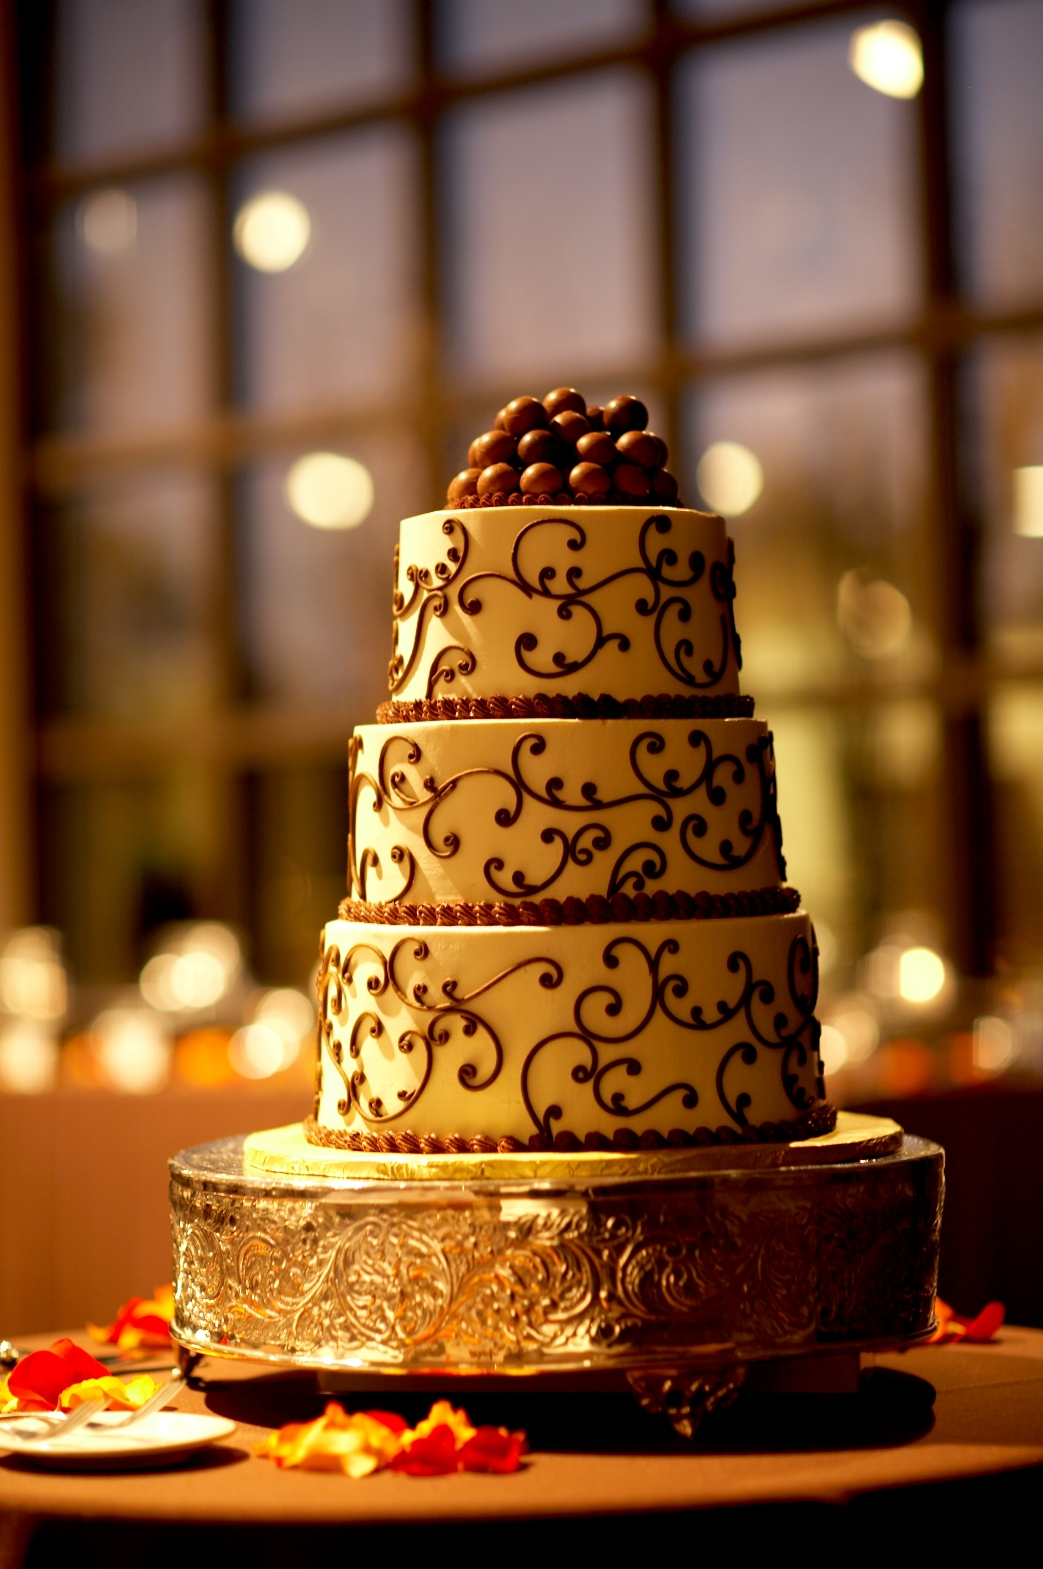 Great Chocolate Ganache Wedding Cake 1043 x 1569 · 1025 kB · jpeg